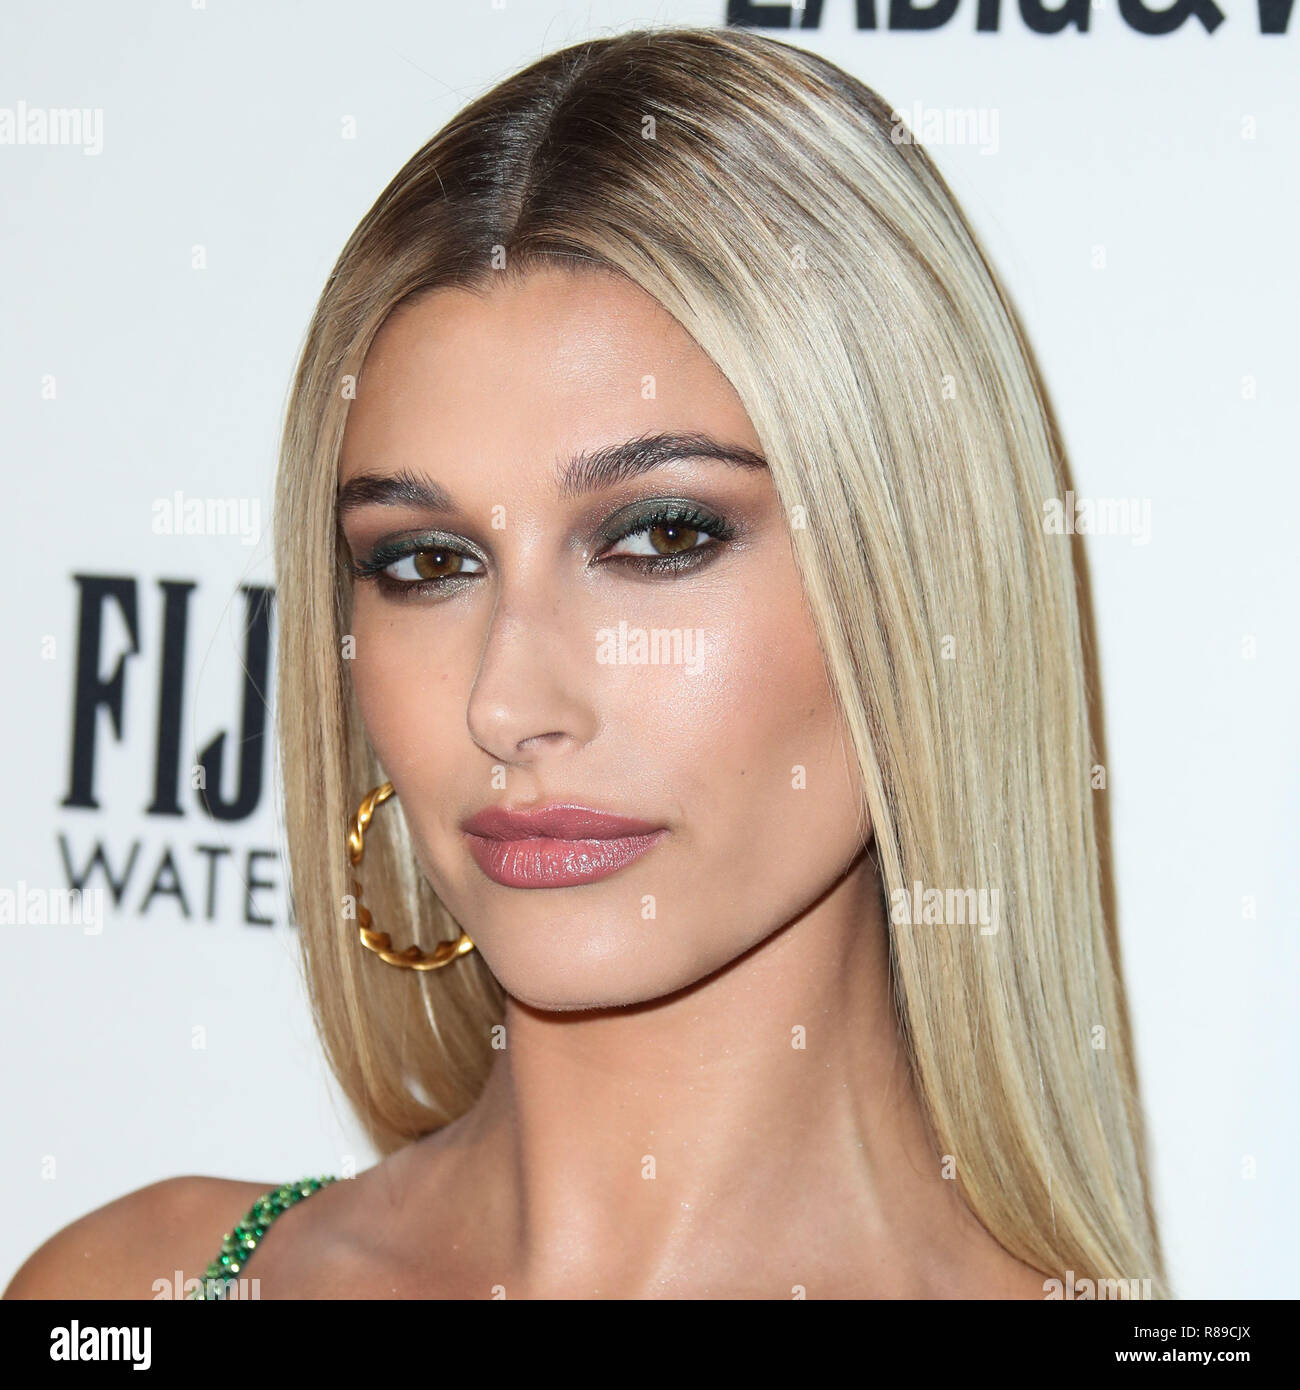 File Hailey Baldwin Reportedly Trademarks Married Name Hailey